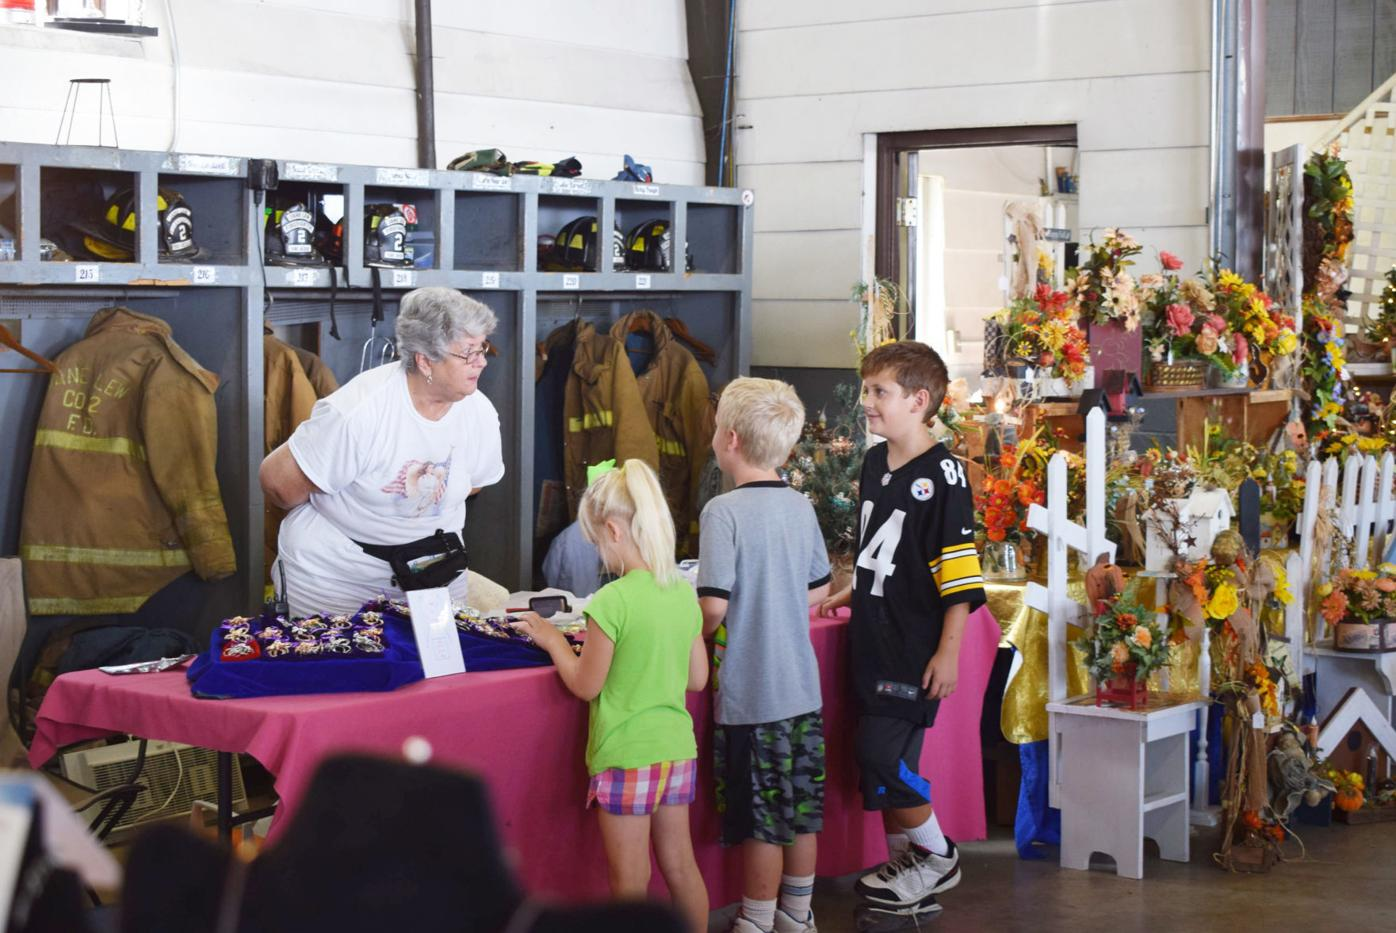 Lewis County's fairs and festivals return for 2021